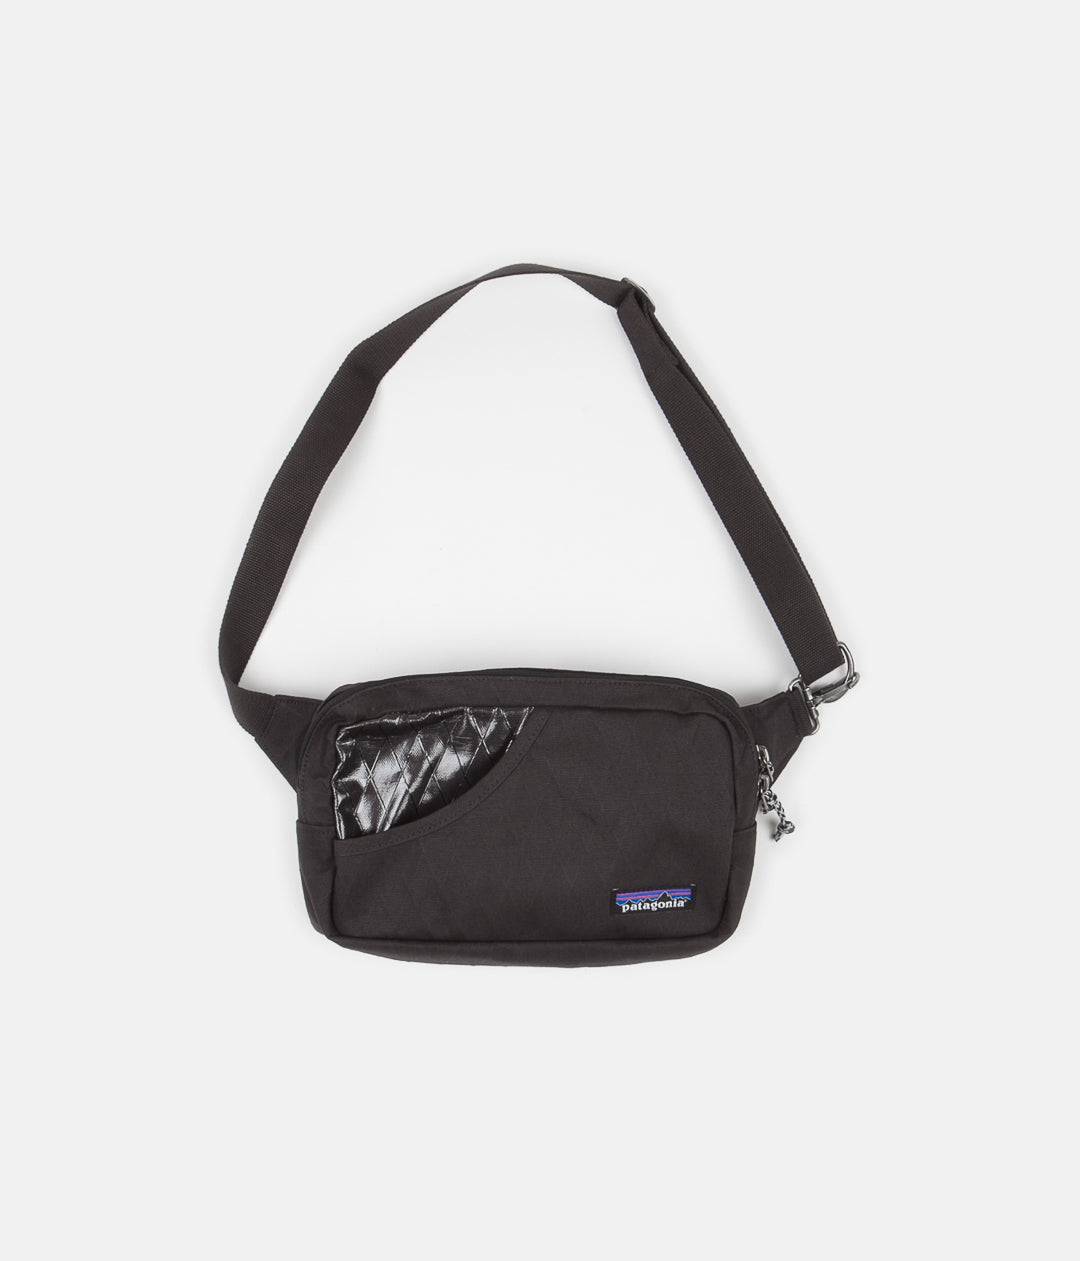 Patagonia Stand Up Belt Bag - Ink Black